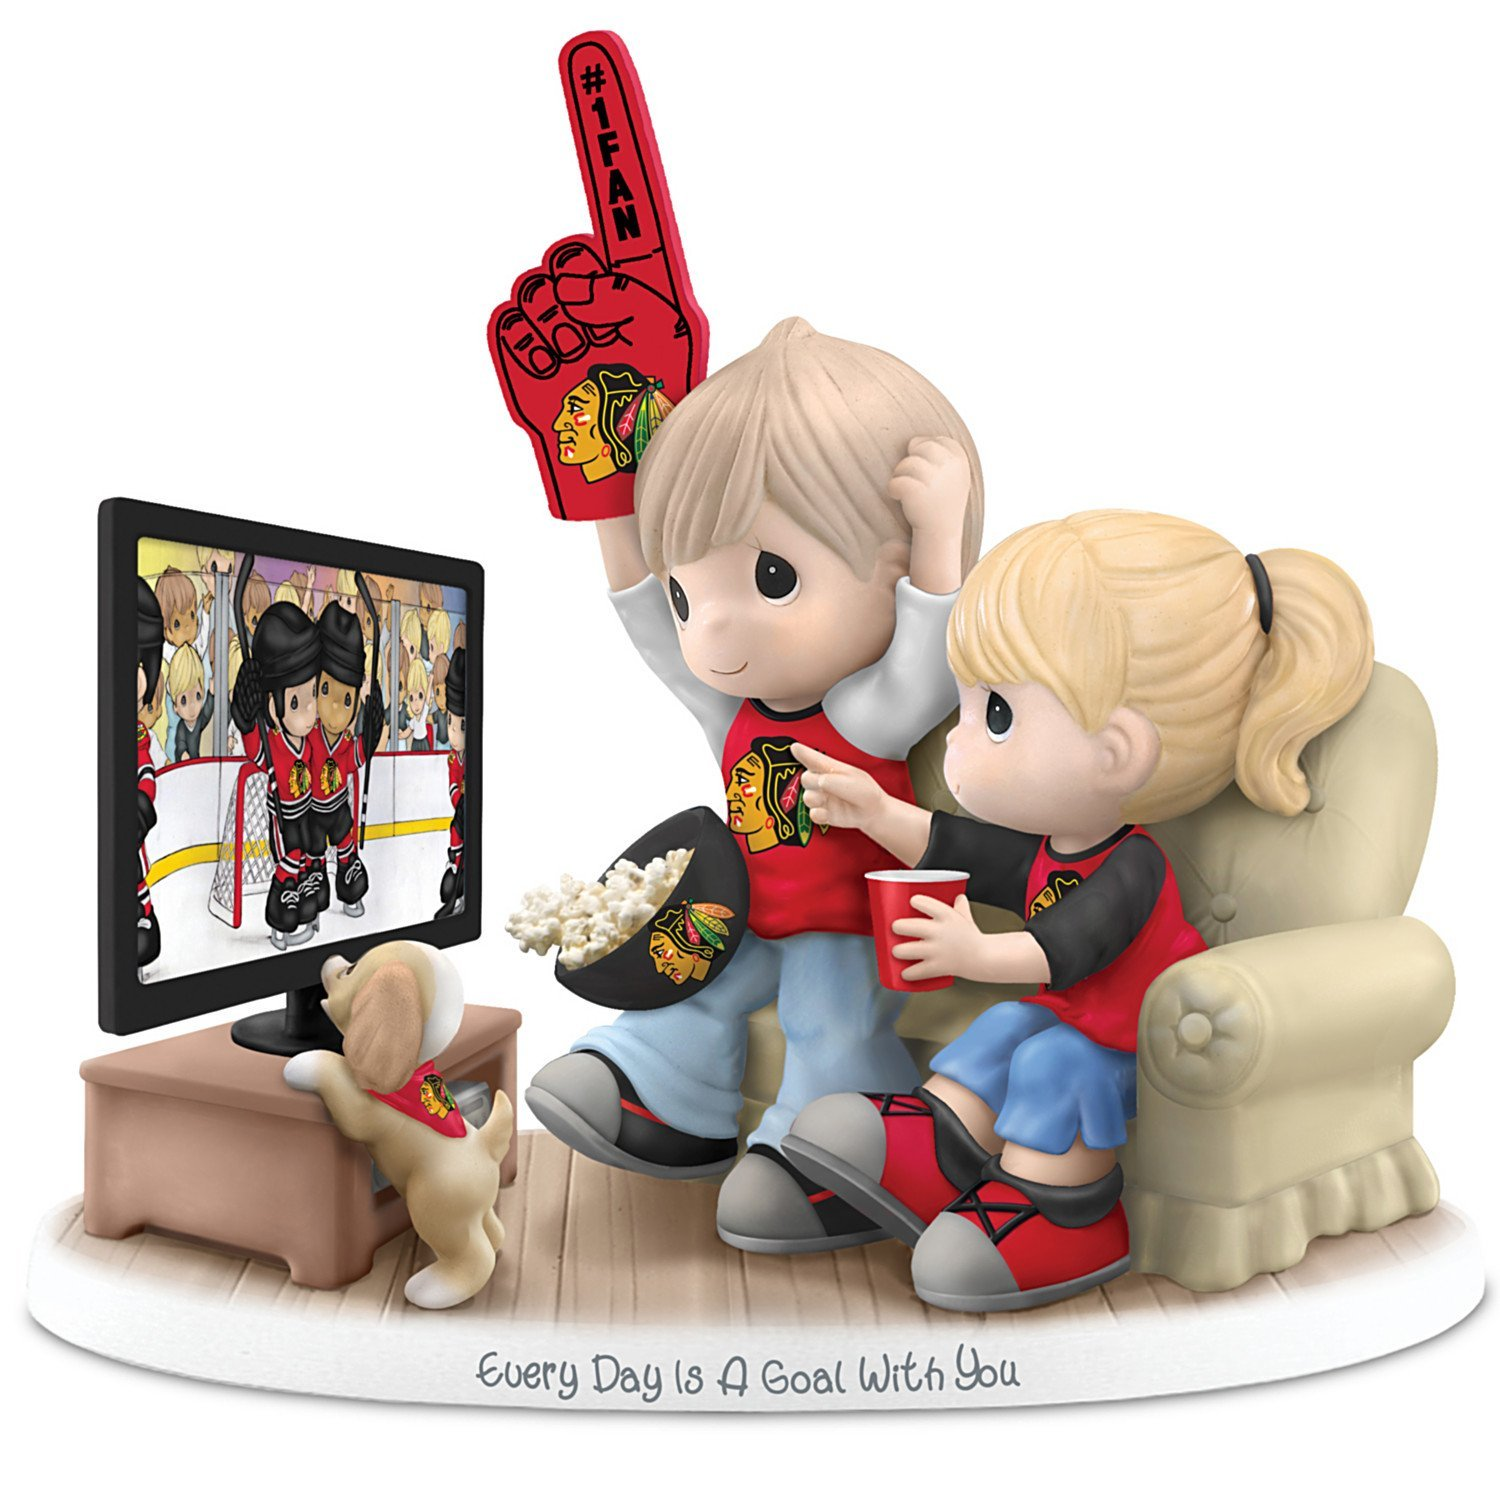 Figurine: Precious Moments Every Day Is A Goal With You Chicago Blackhawks Figurine by The Hamilton Collection